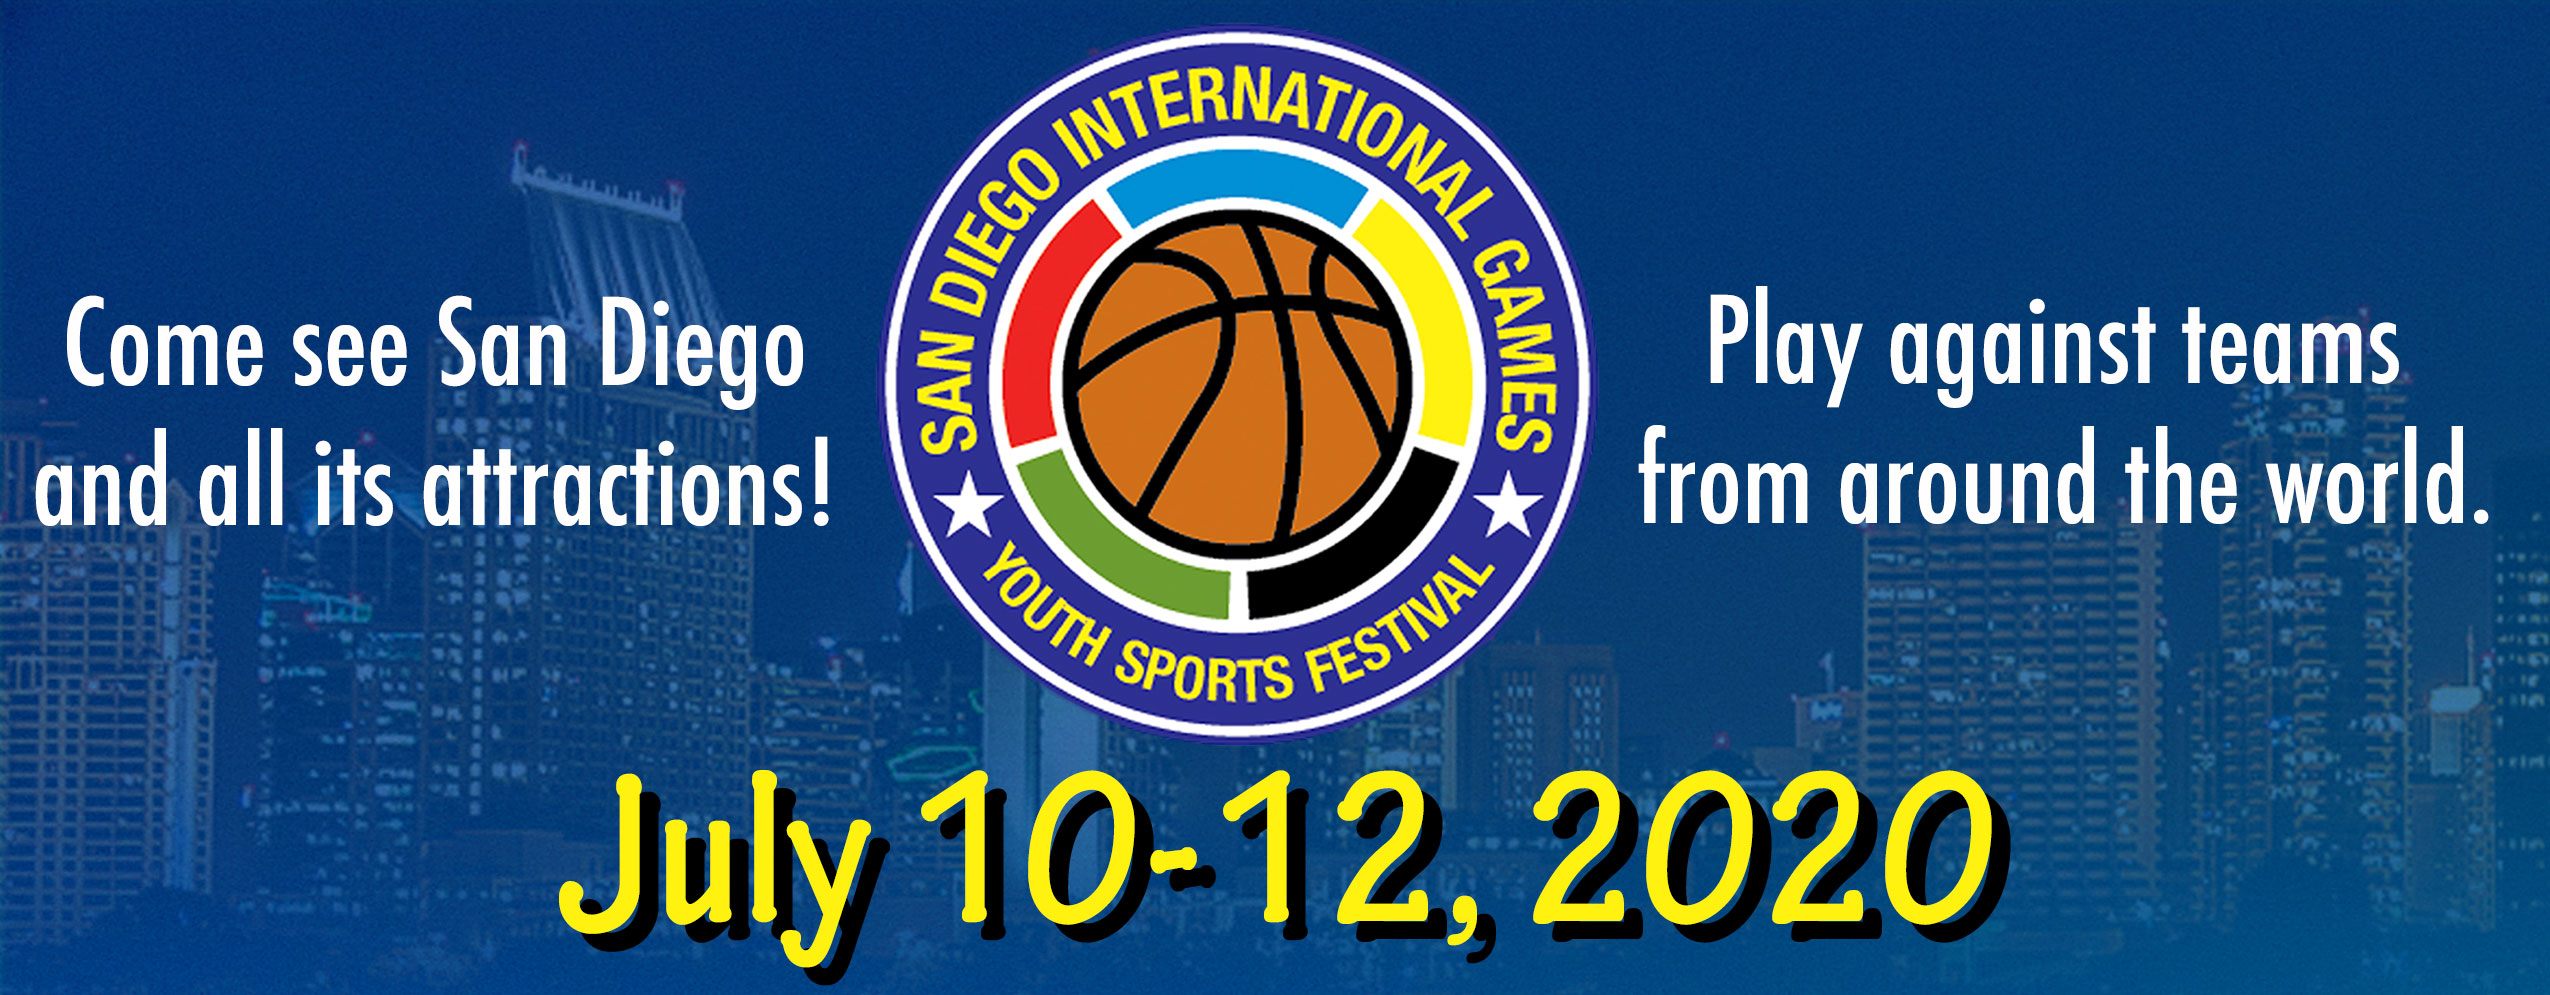 International Games San Diego Sol Basketball